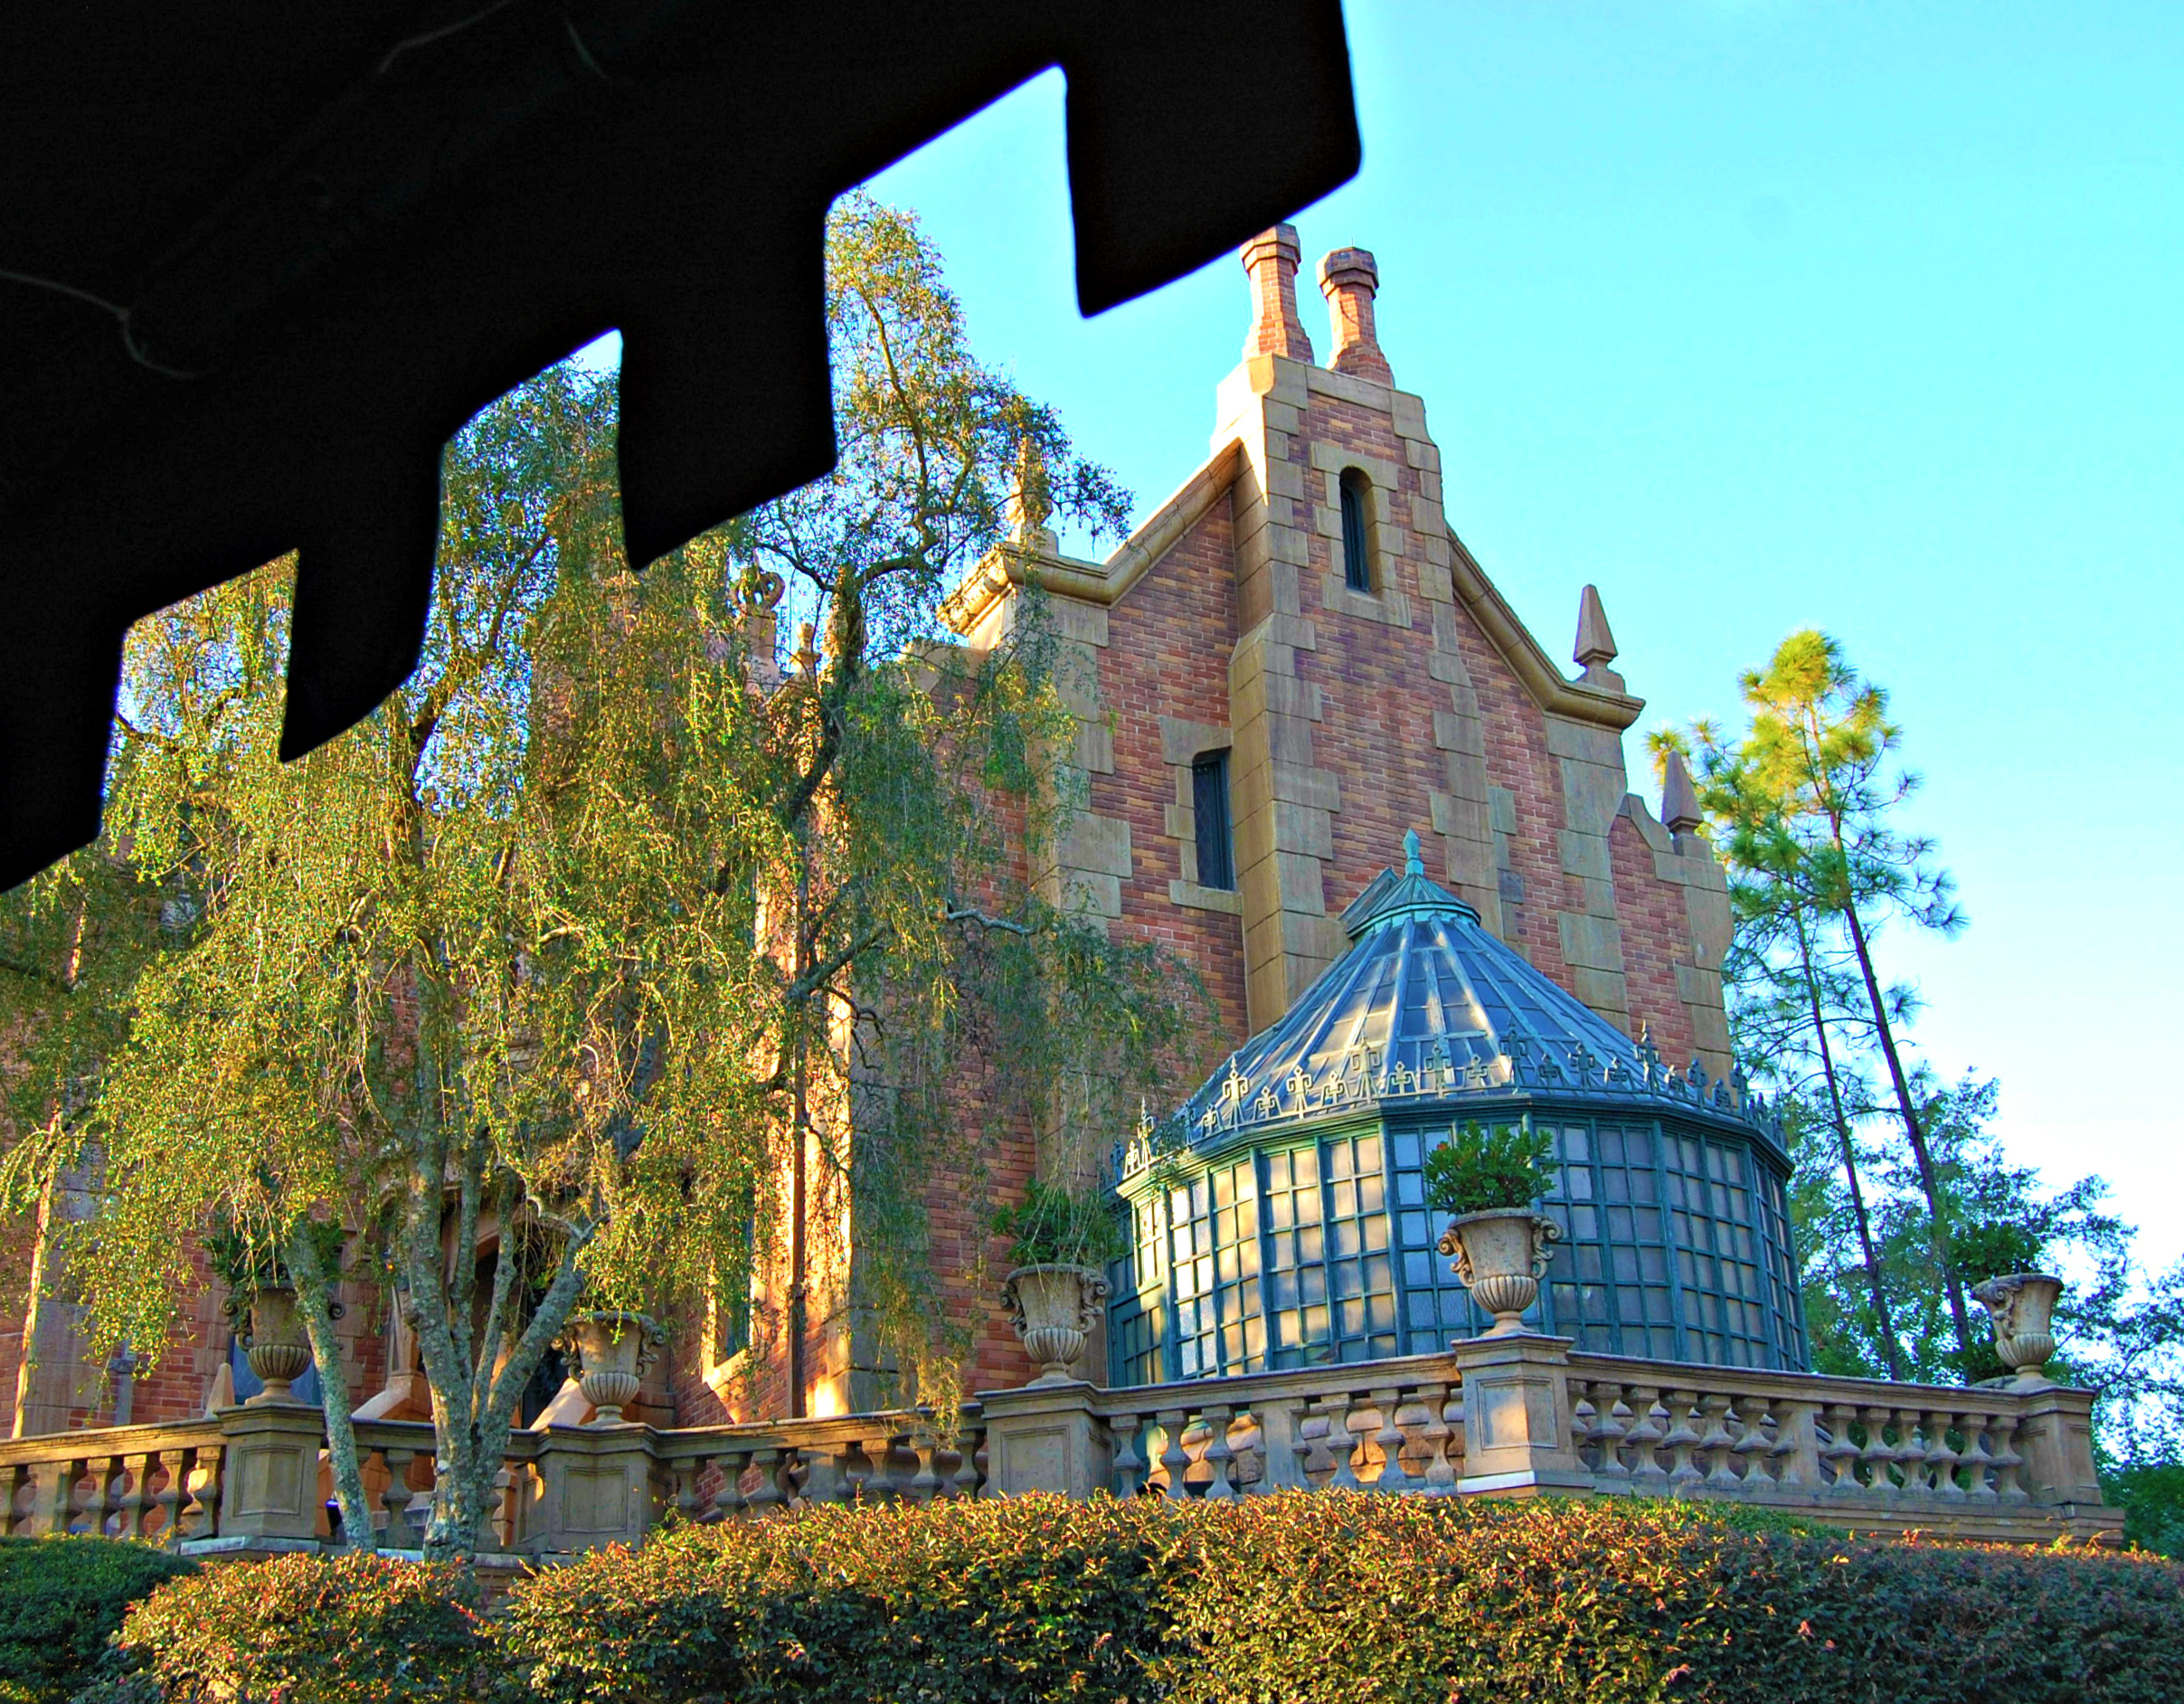 The Magic Kingdom's Haunted Mansion